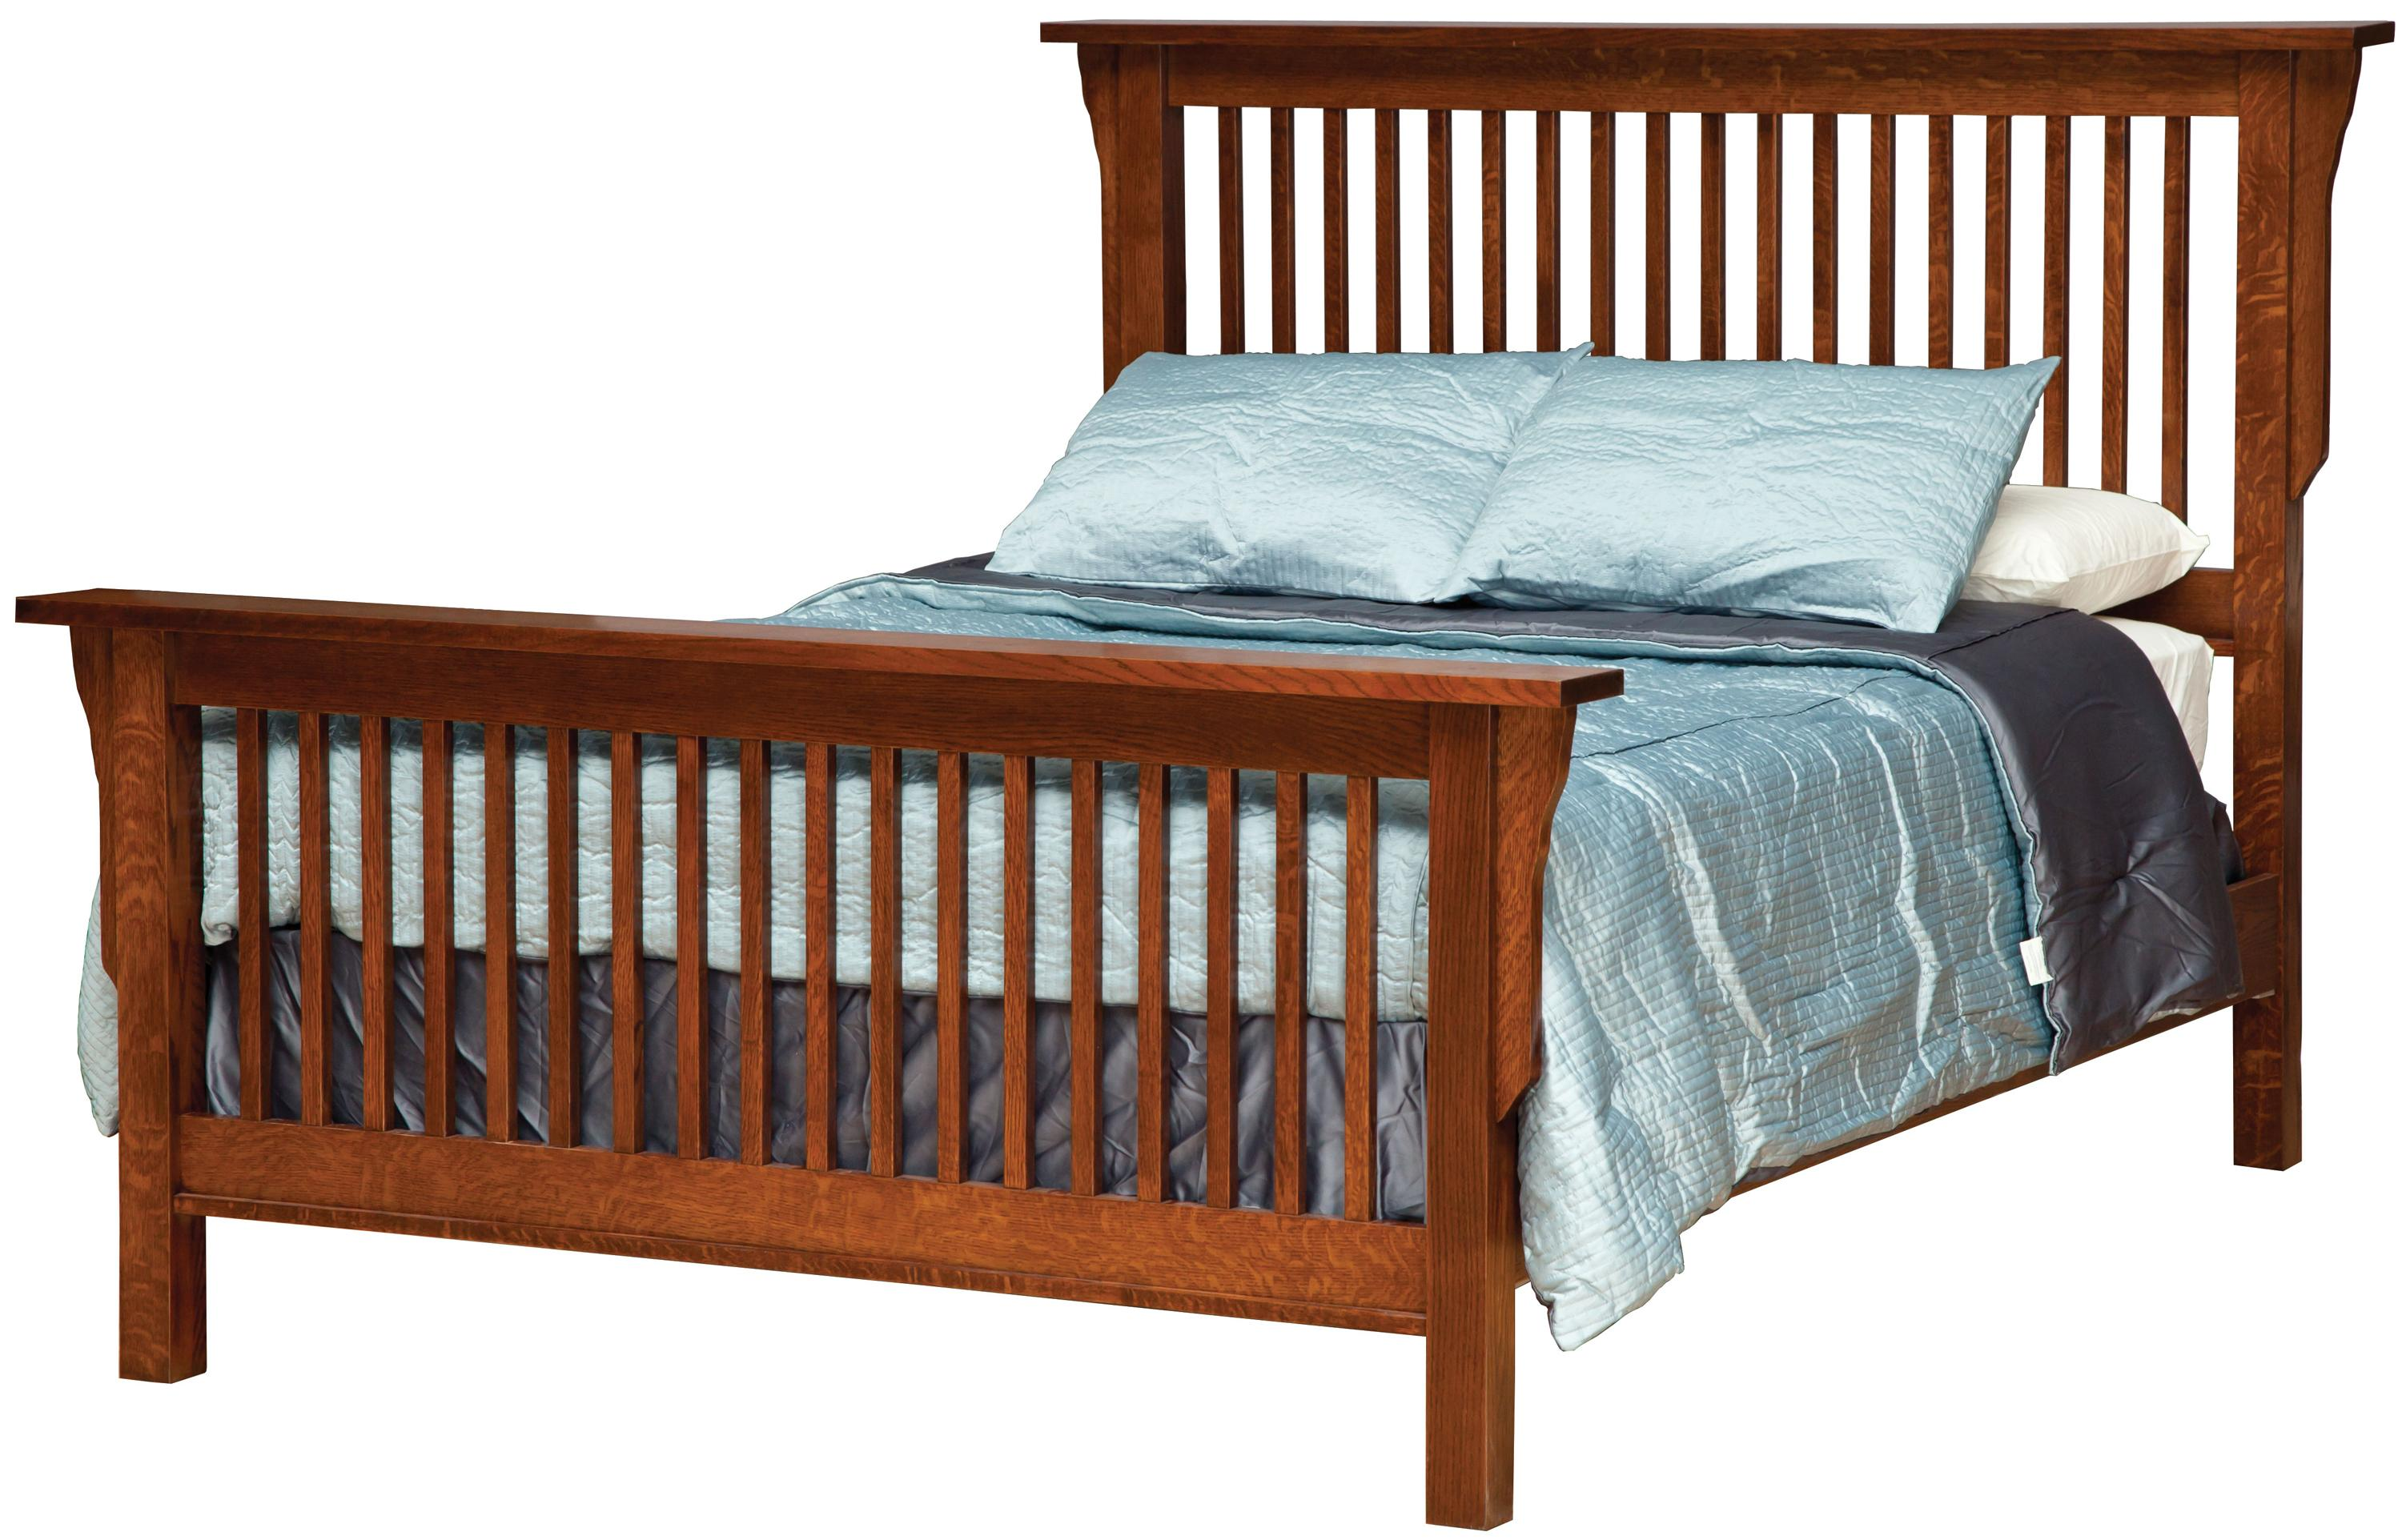 Daniel S Amish Mission Twin Mission Style Frame Bed With Headboard Footboard Slat Detail Belfort Furniture Panel Beds